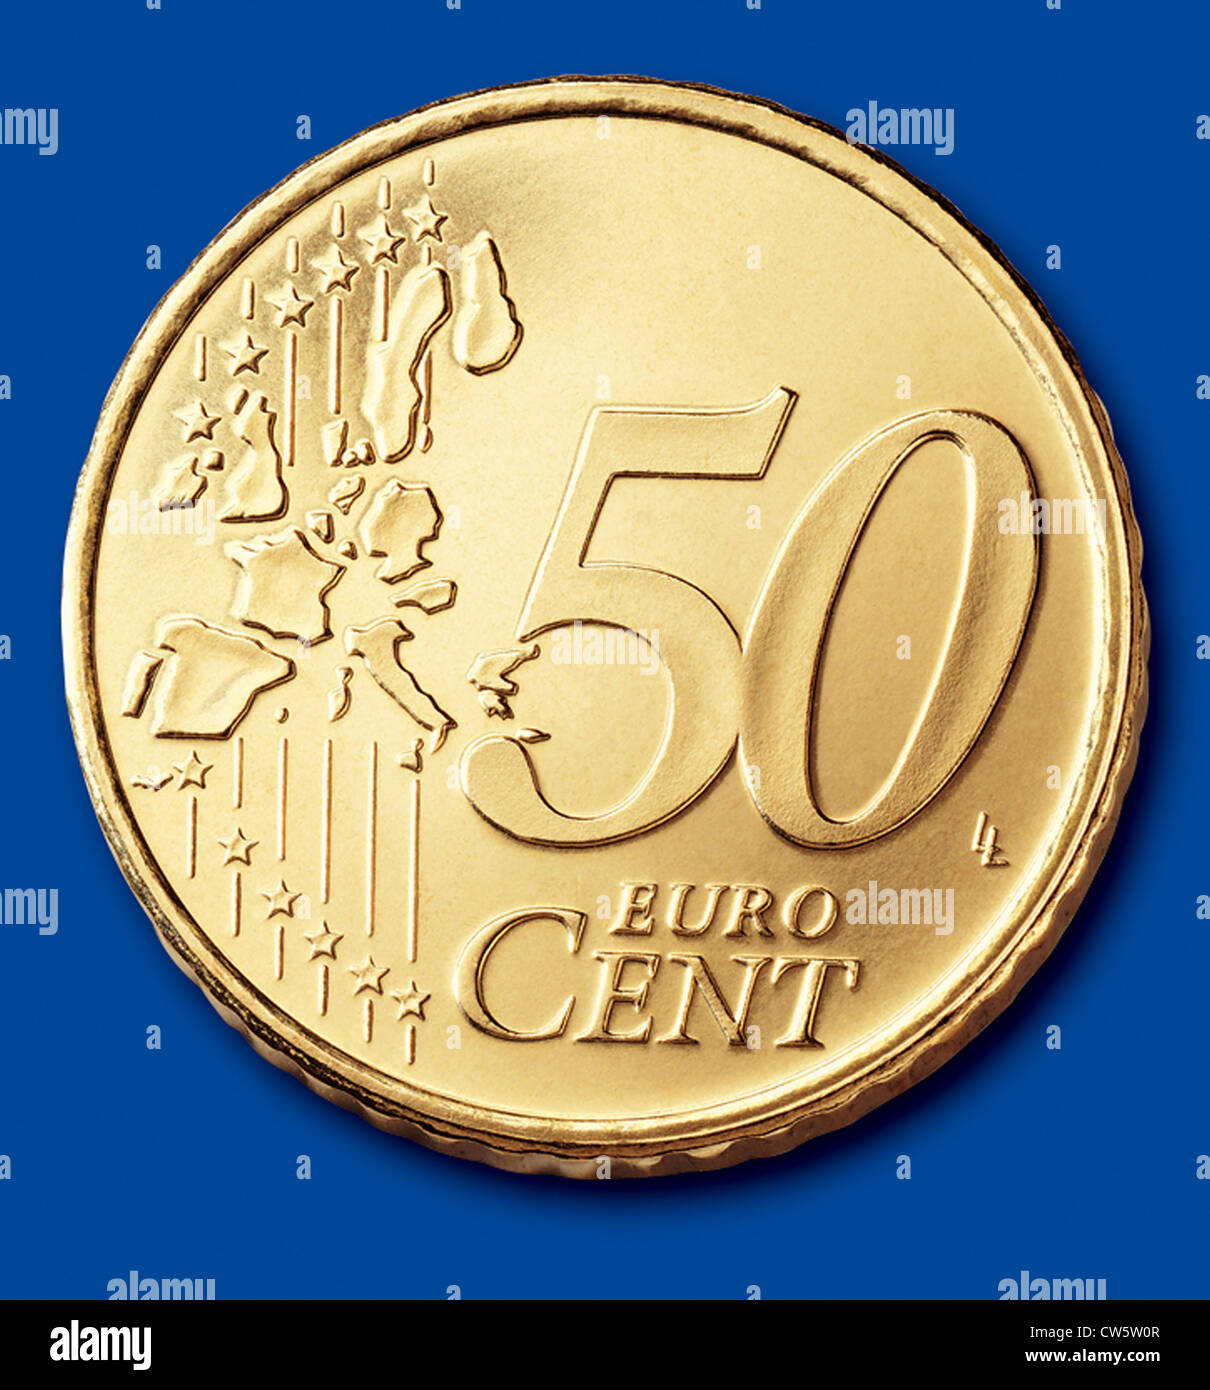 Coin of 50 cents (Euro zone) - Stock Image